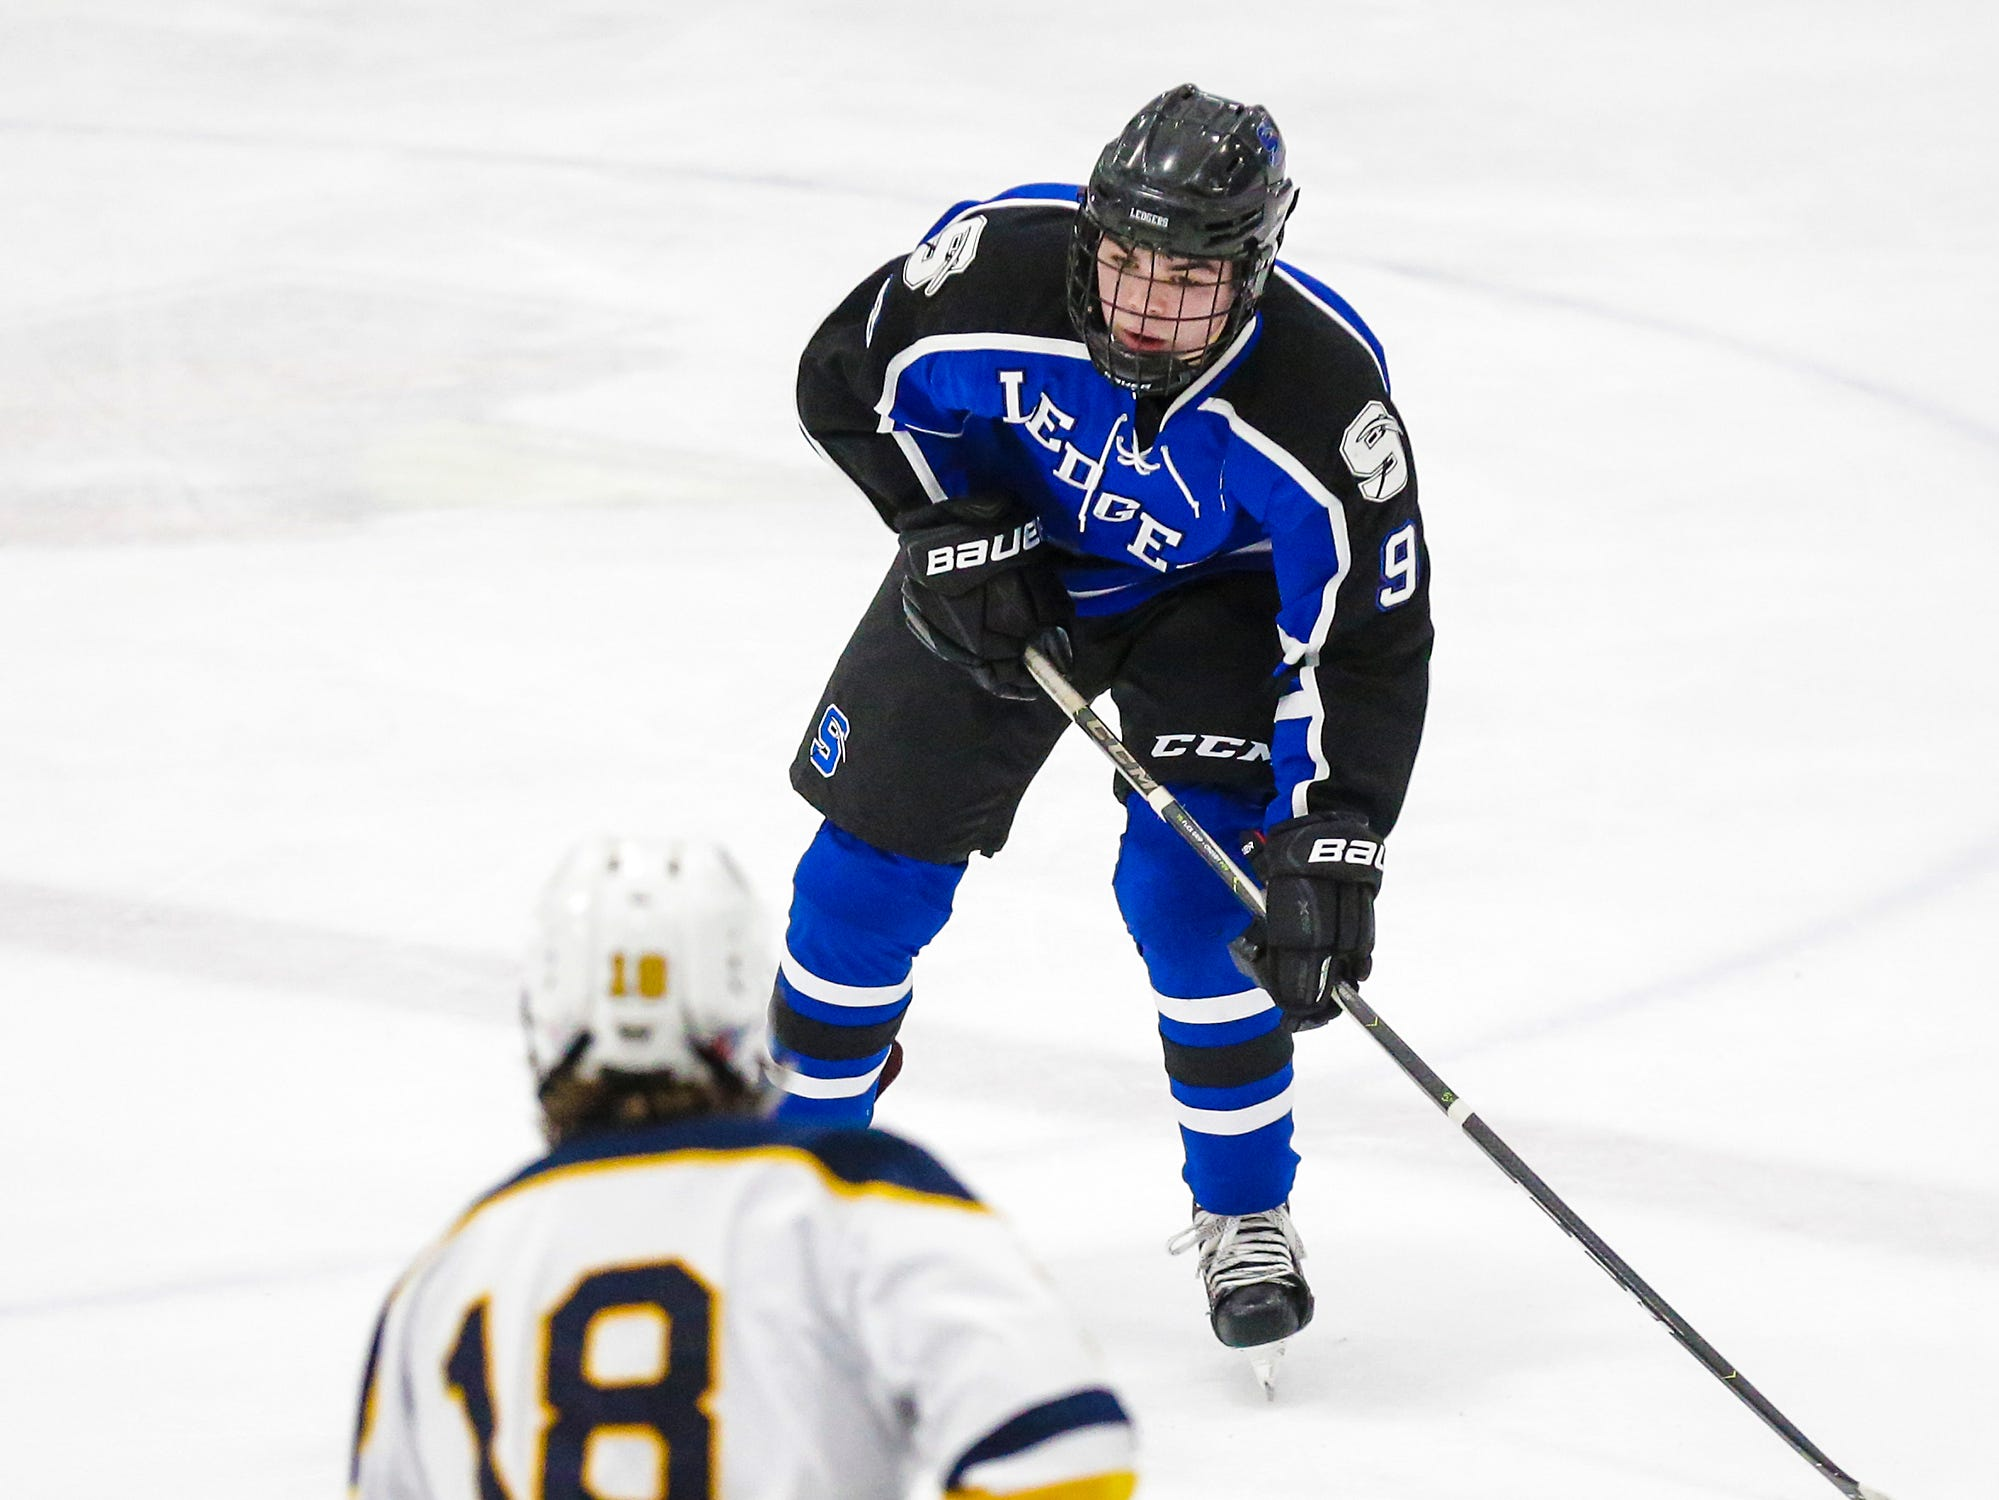 St. Mary's Springs boys co-op hockey's Noah Blanck (9) is defended by University School of Milwaukee's TJ Fenton (18) Friday, February 22, 2019 during their WIAA sectional final game in Fond du Lac. University School won the game 6-1 and will advance to state. Doug Raflik/USA TODAY NETWORK-Wisconsin